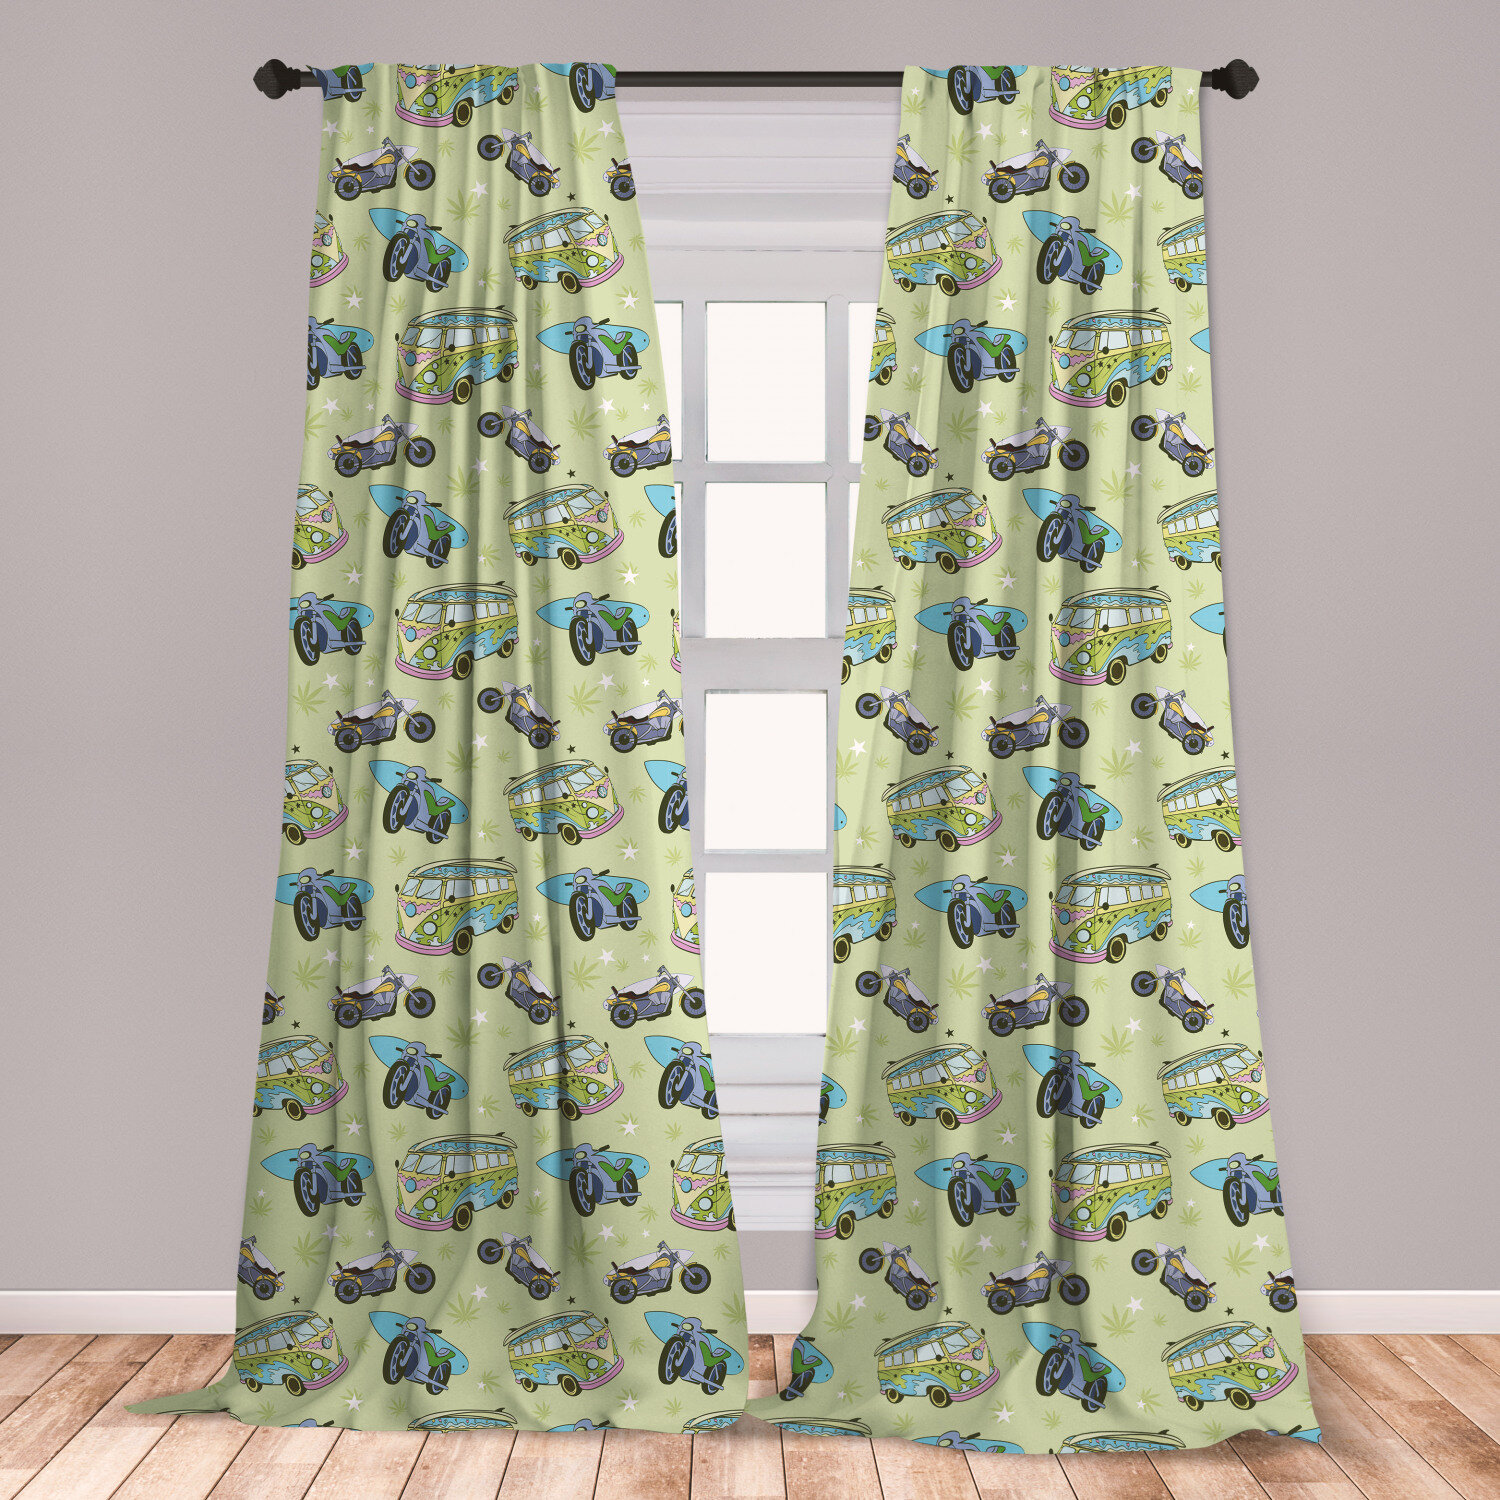 East Urban Home Hippie Room Darkening Rod Pocket Curtain Panels Wayfair